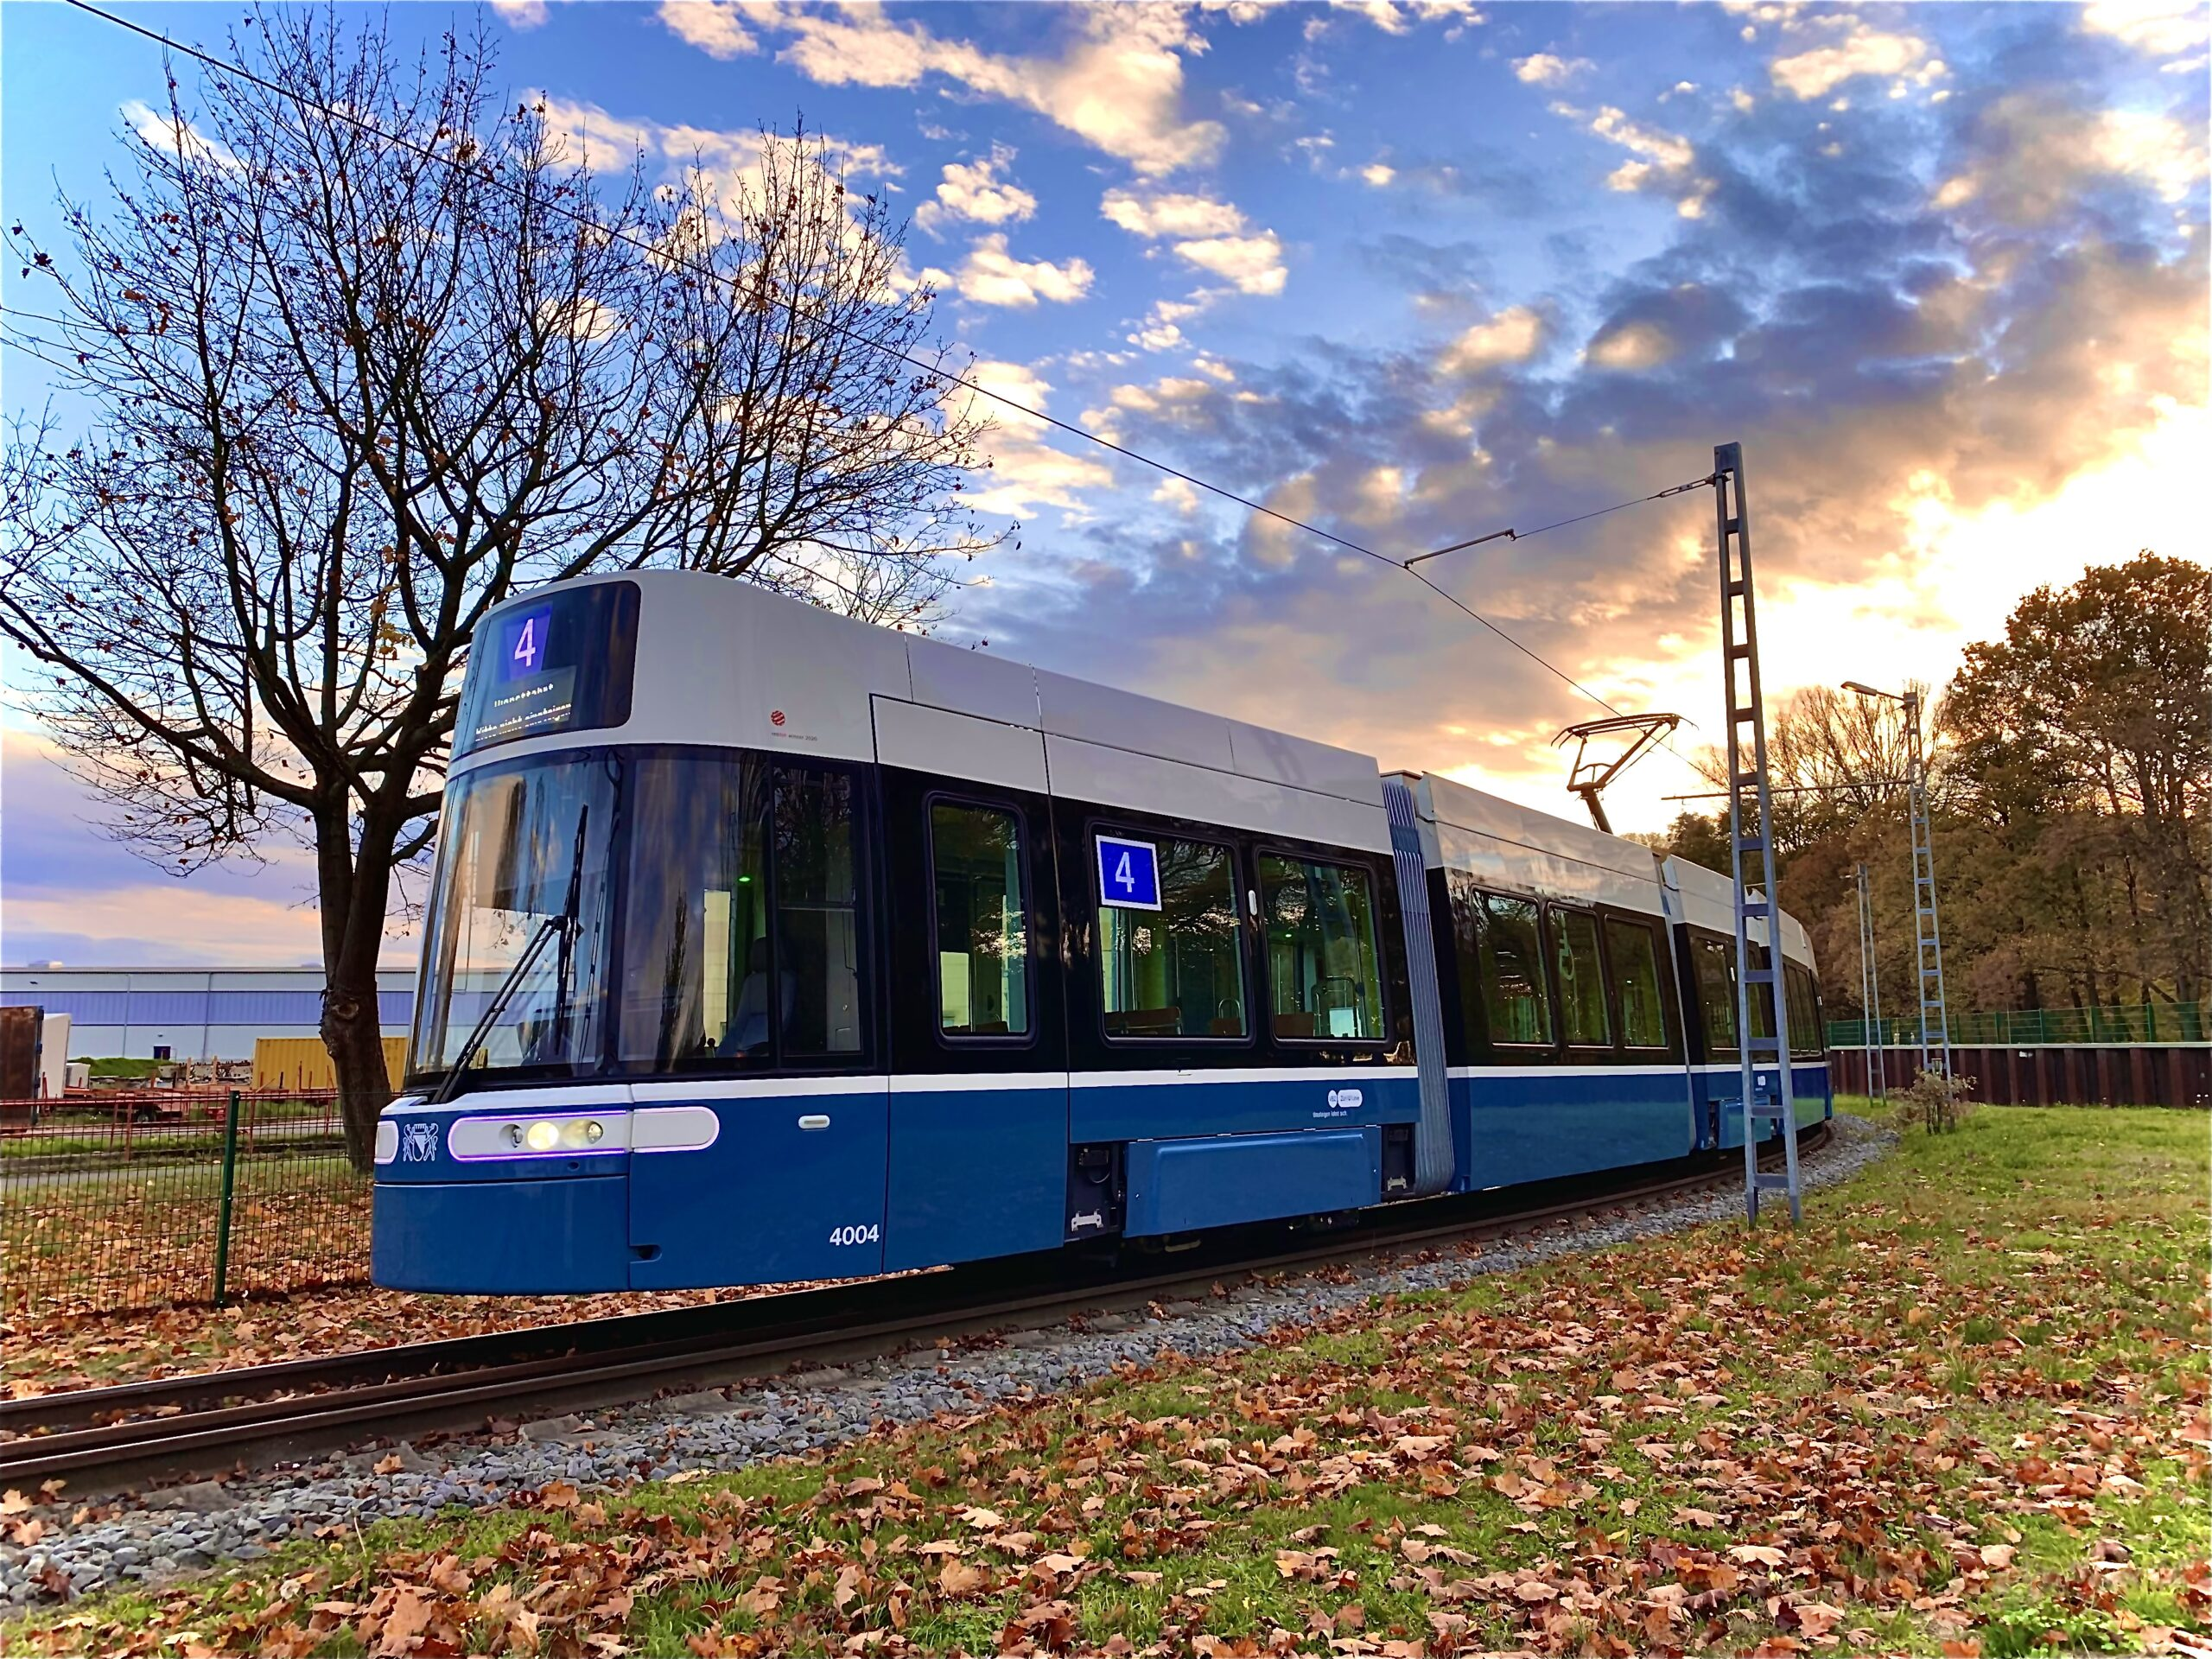 Bombardier FLEXITY tram for Zurich